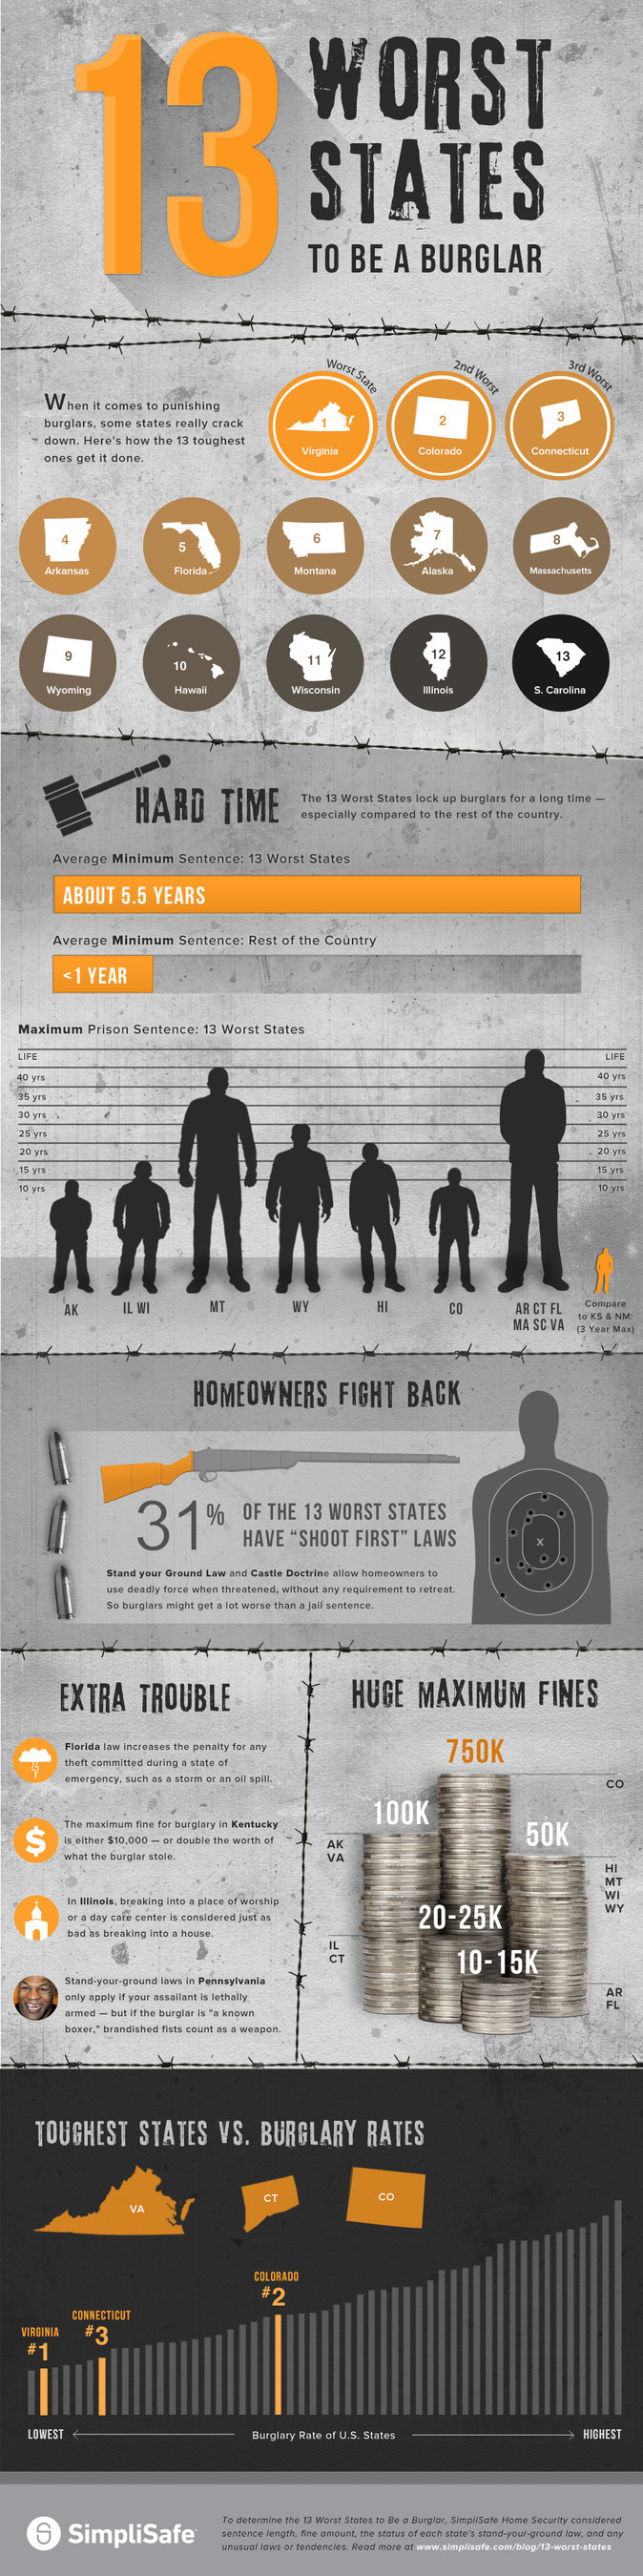 13 Worst States to be a Burglar: An infographic by SimpliSafe